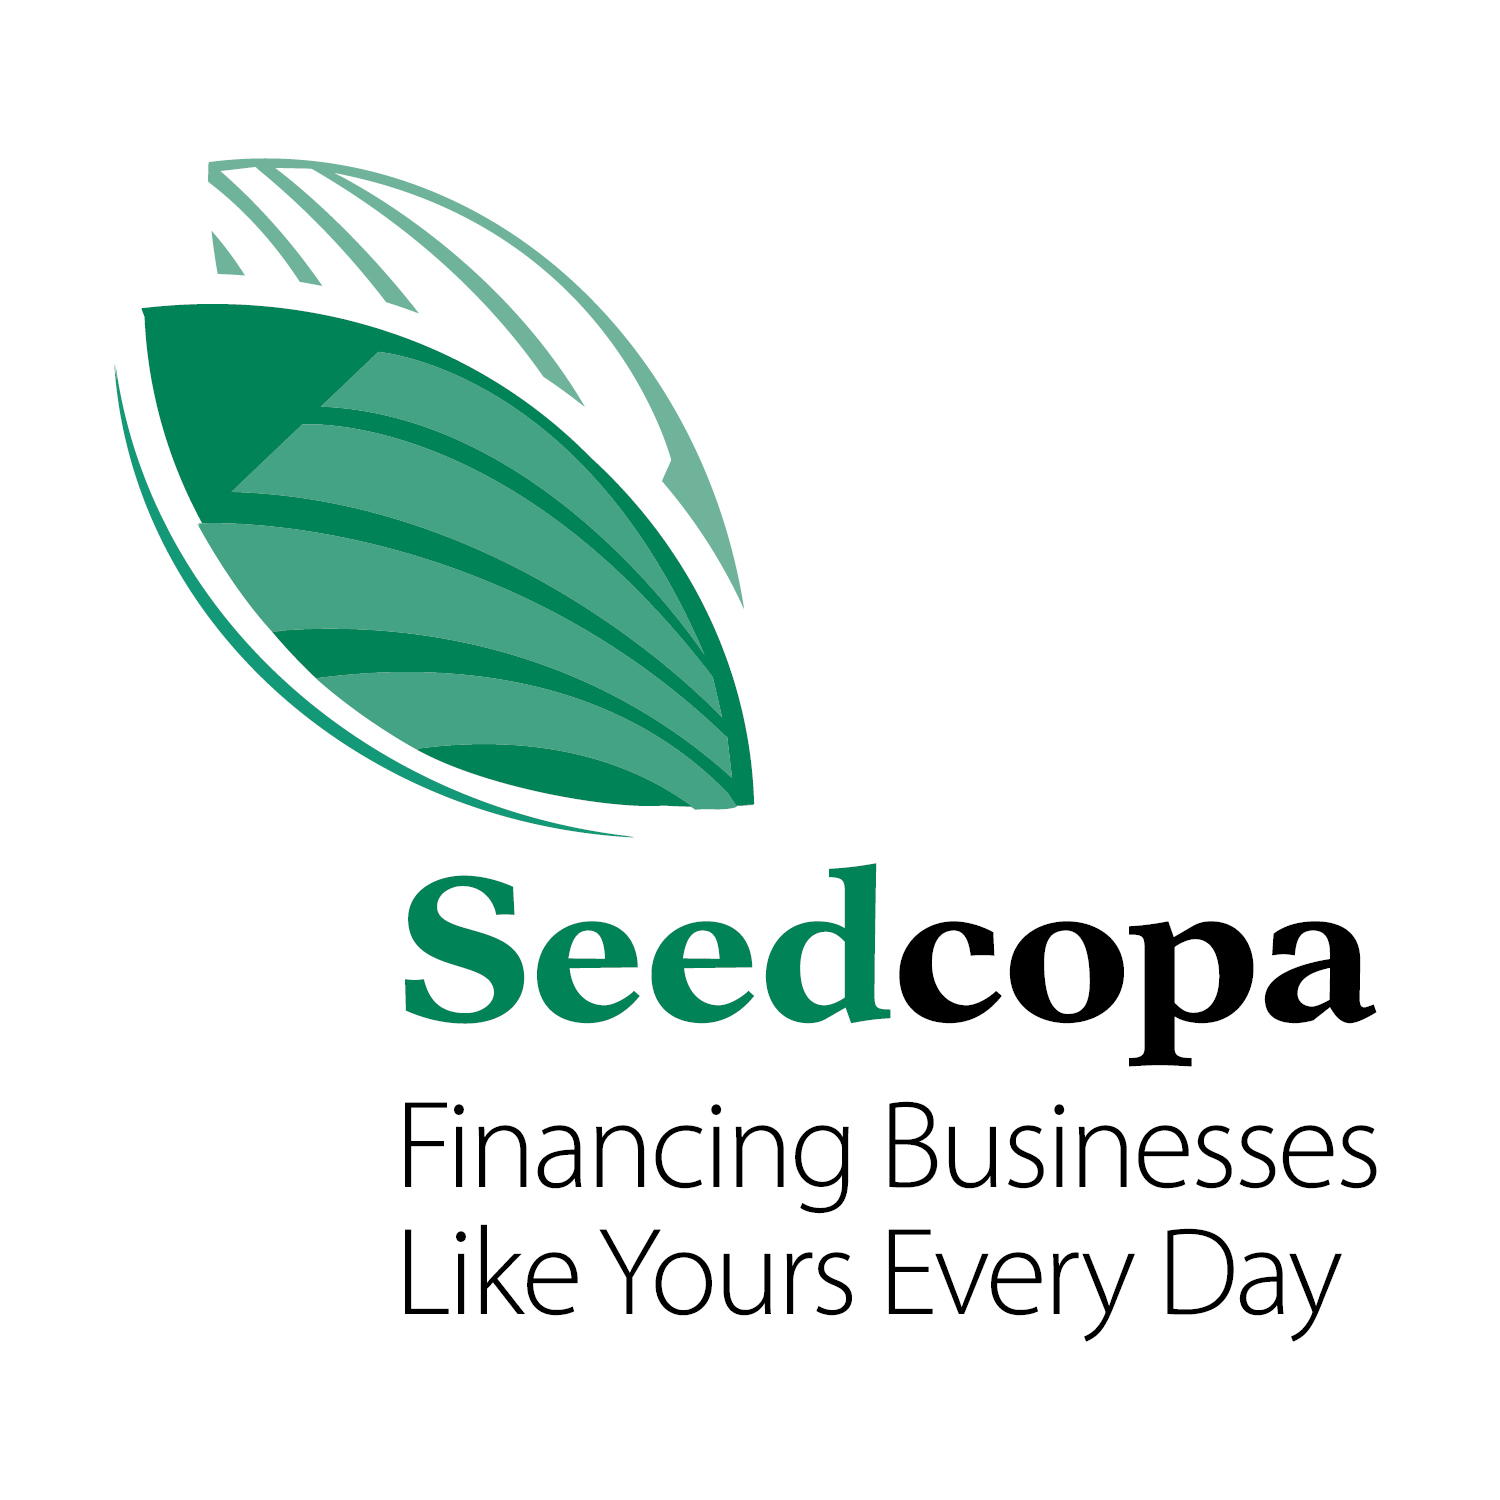 Seedcopa Alert: Coronavirus Assistance for Small Businesses